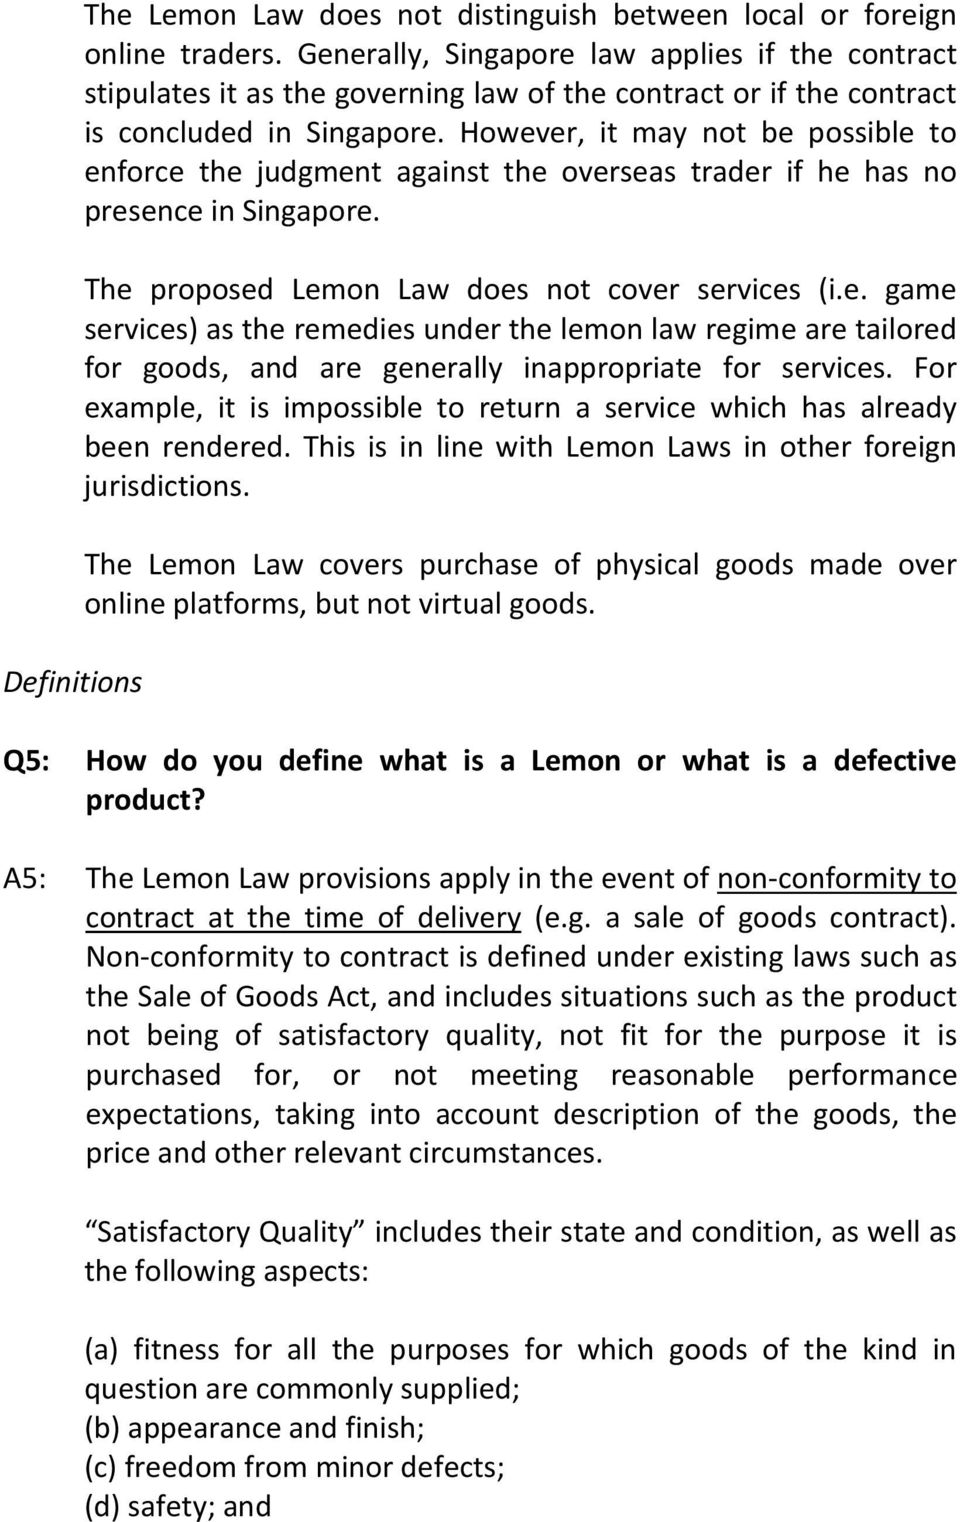 However, it may not be possible to enforce the judgment against the overseas trader if he has no presence in Singapore. The proposed Lemon Law does not cover services (i.e. game services) as the remedies under the lemon law regime are tailored for goods, and are generally inappropriate for services.